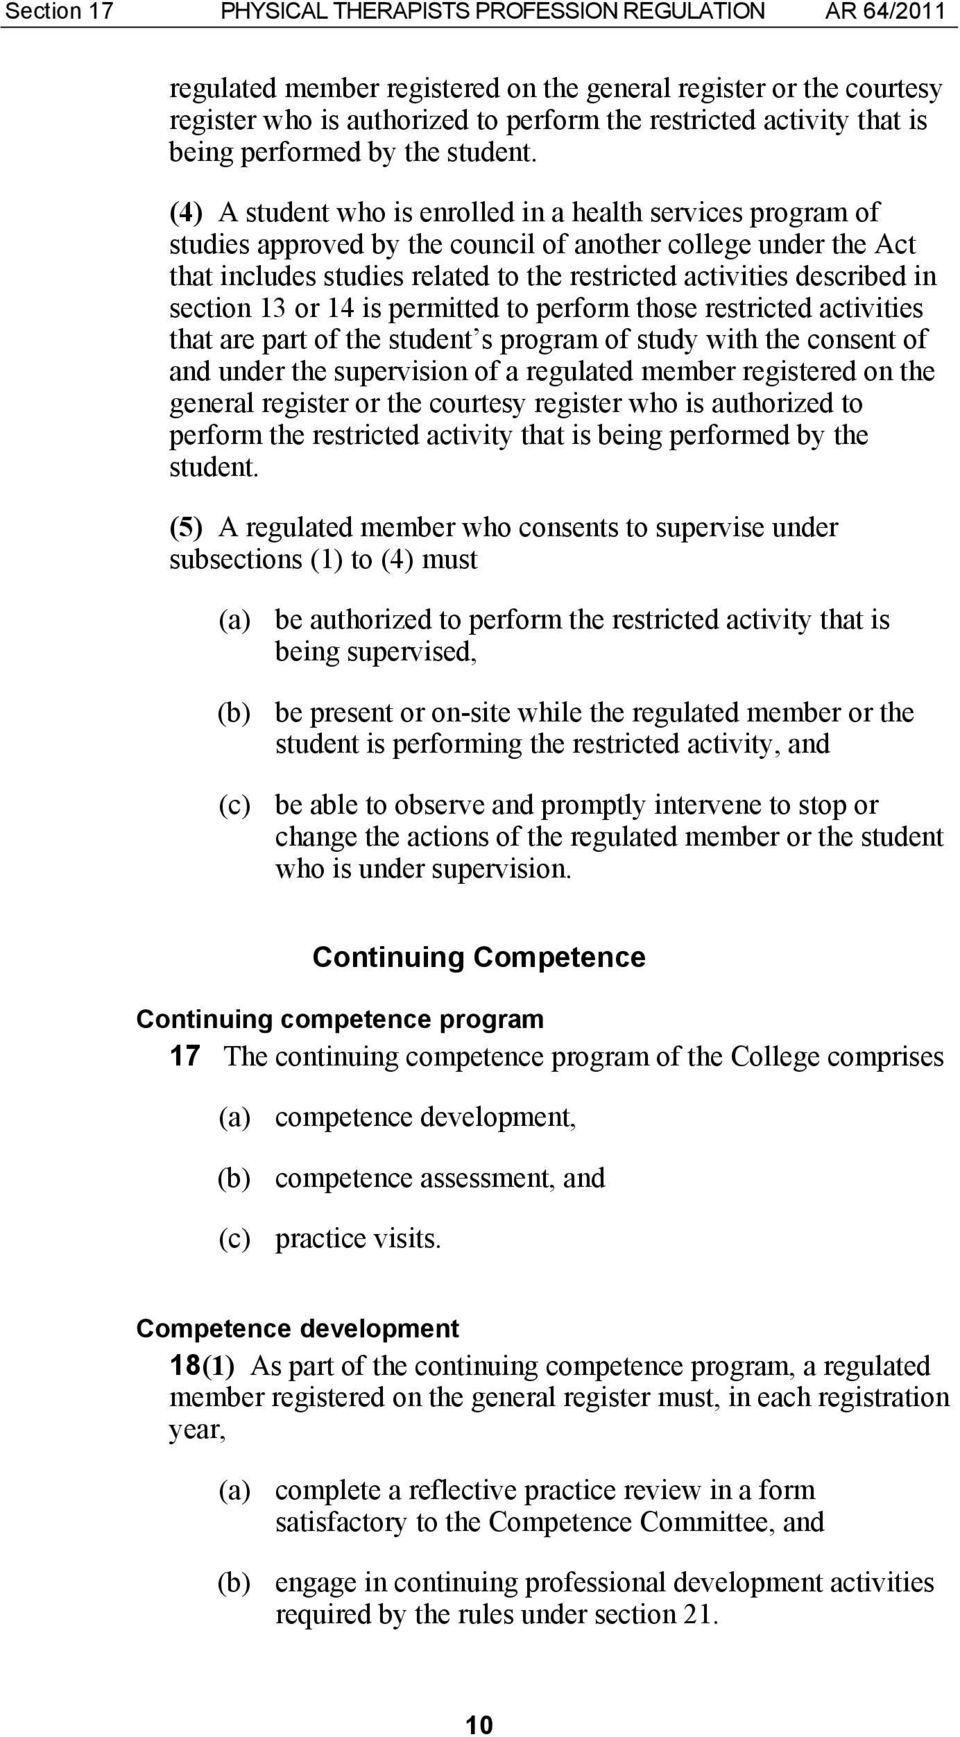 (4) A student who is enrolled in a health services program of studies approved by the council of another college under the Act that includes studies related to the restricted activities described in